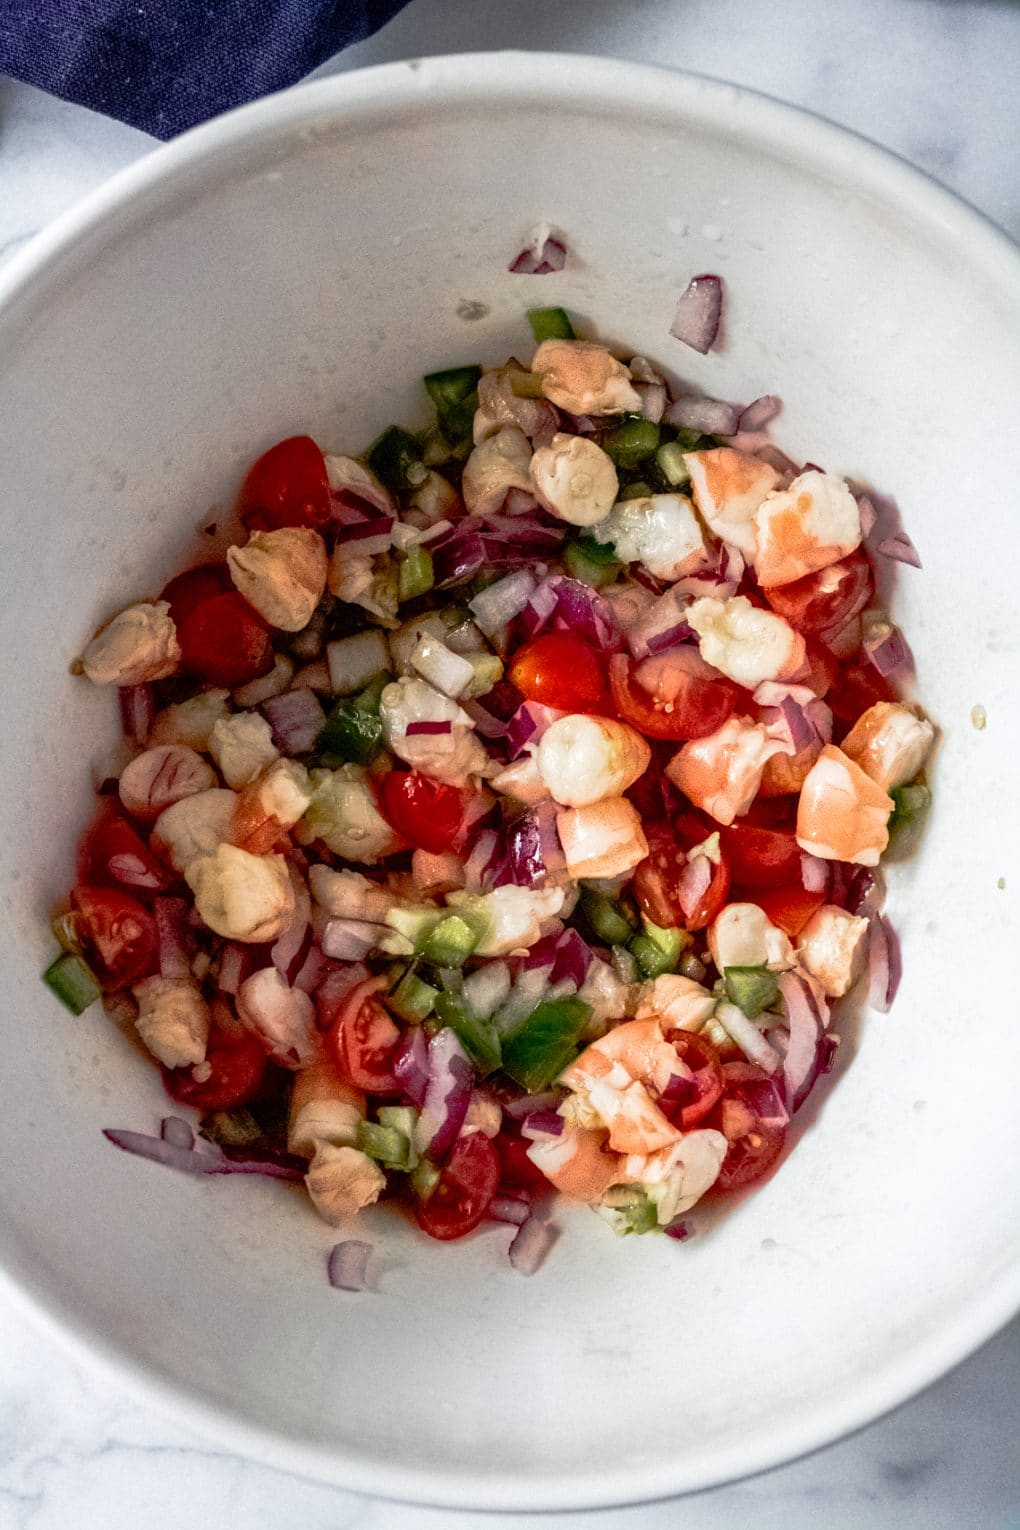 coconut lime ceviche ingredients in a bowl